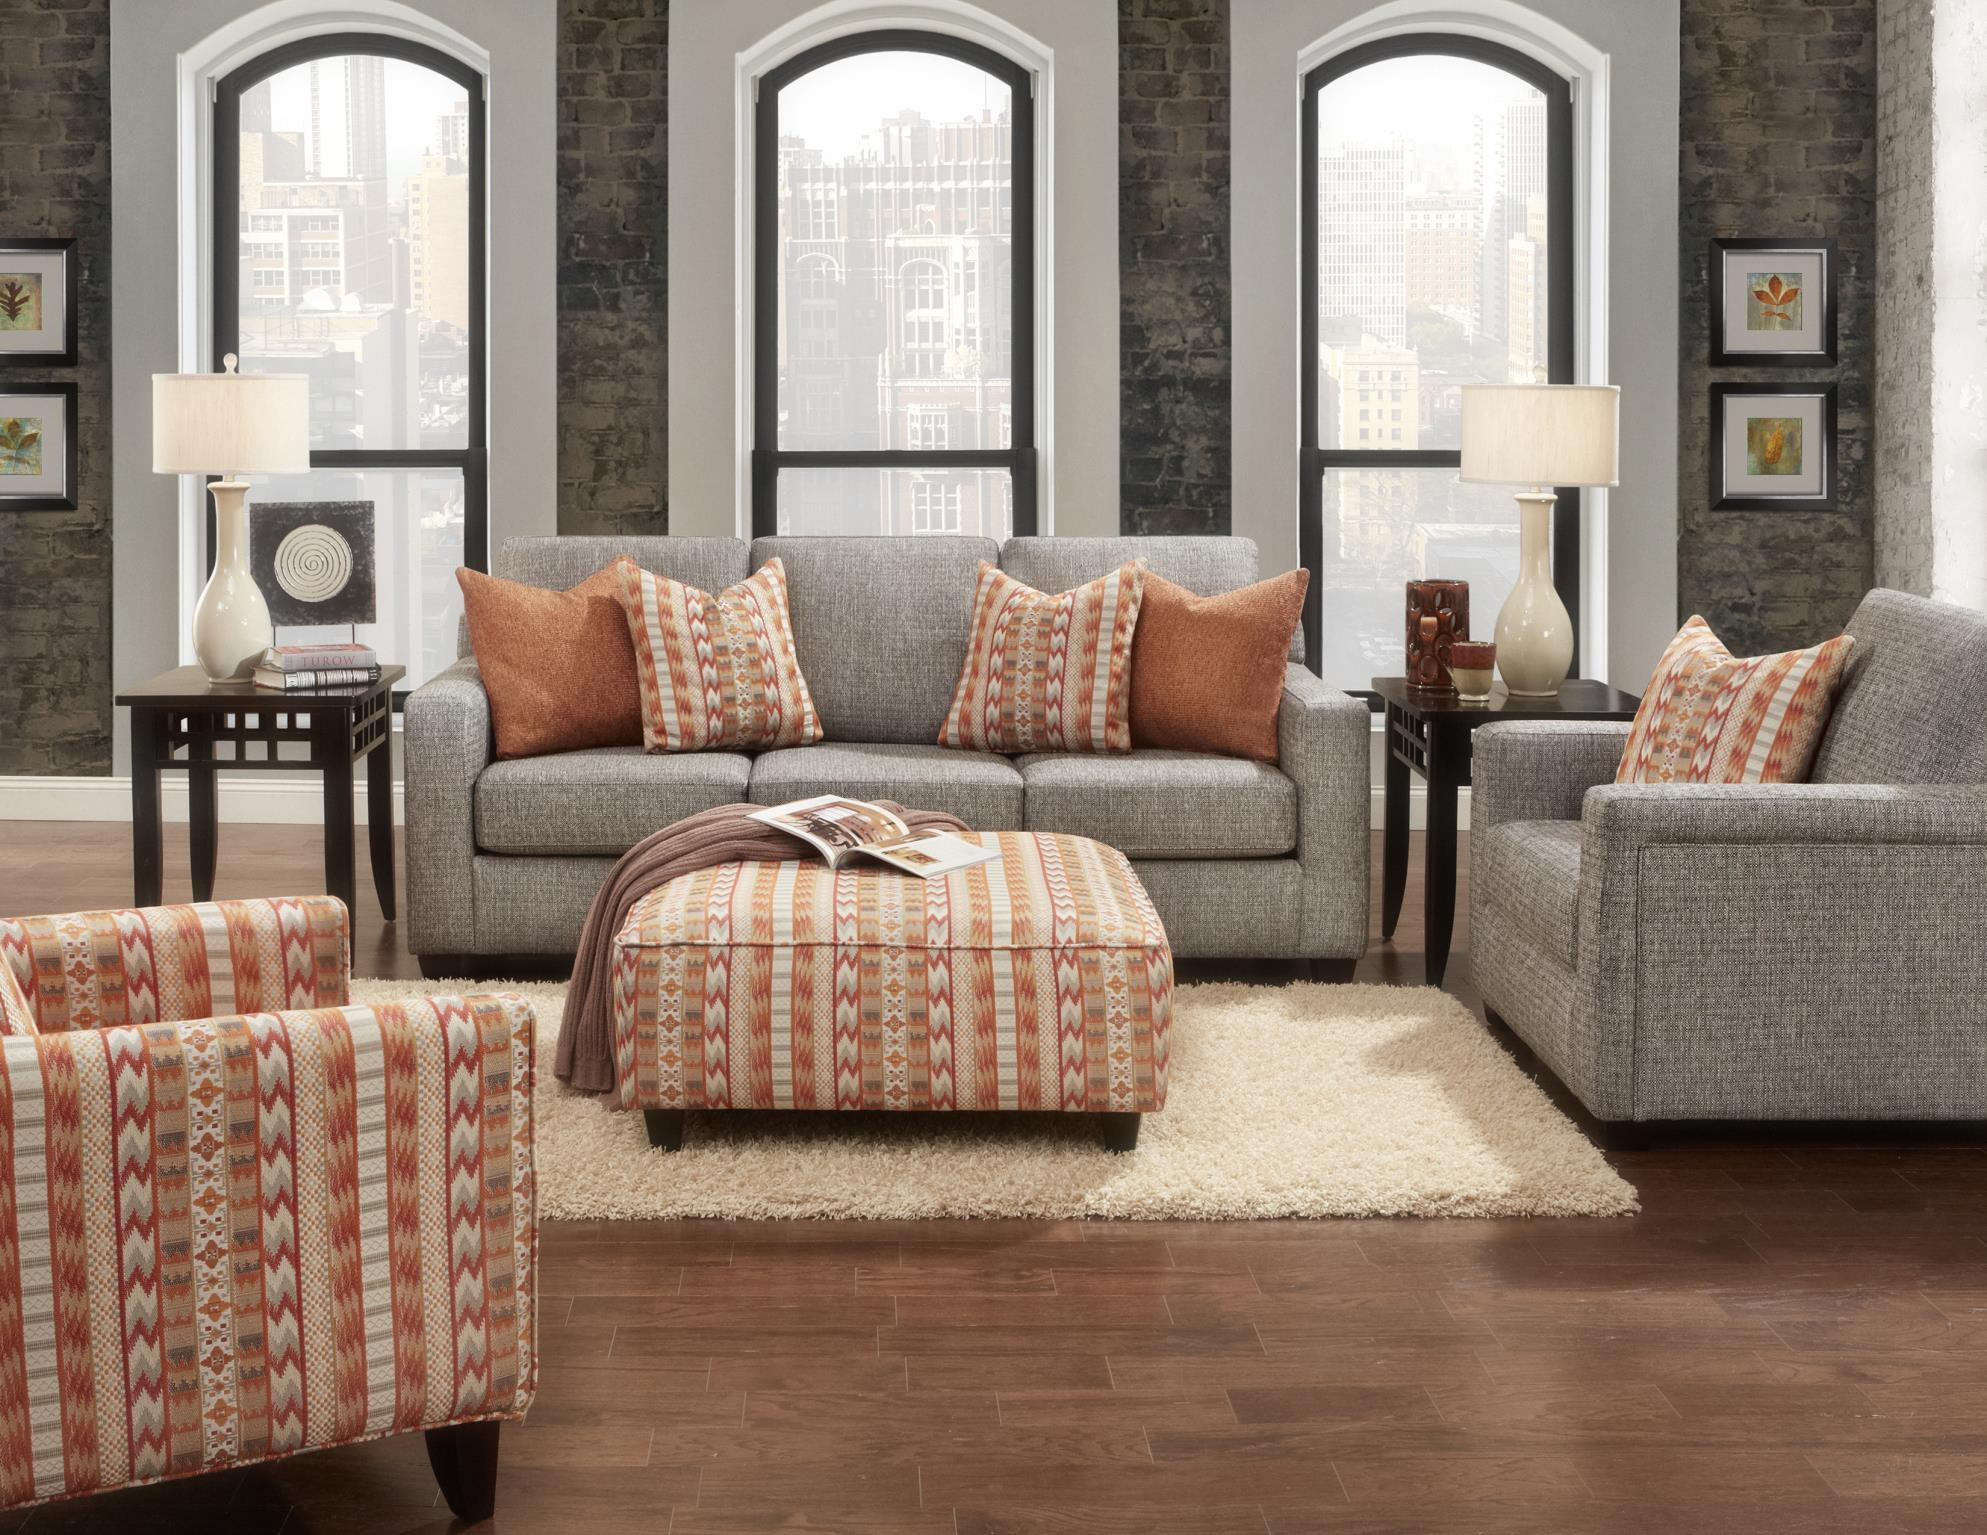 Best ideas about Family Room Couches . Save or Pin Living Room Furniture Inside Out Furniture and Design Now.